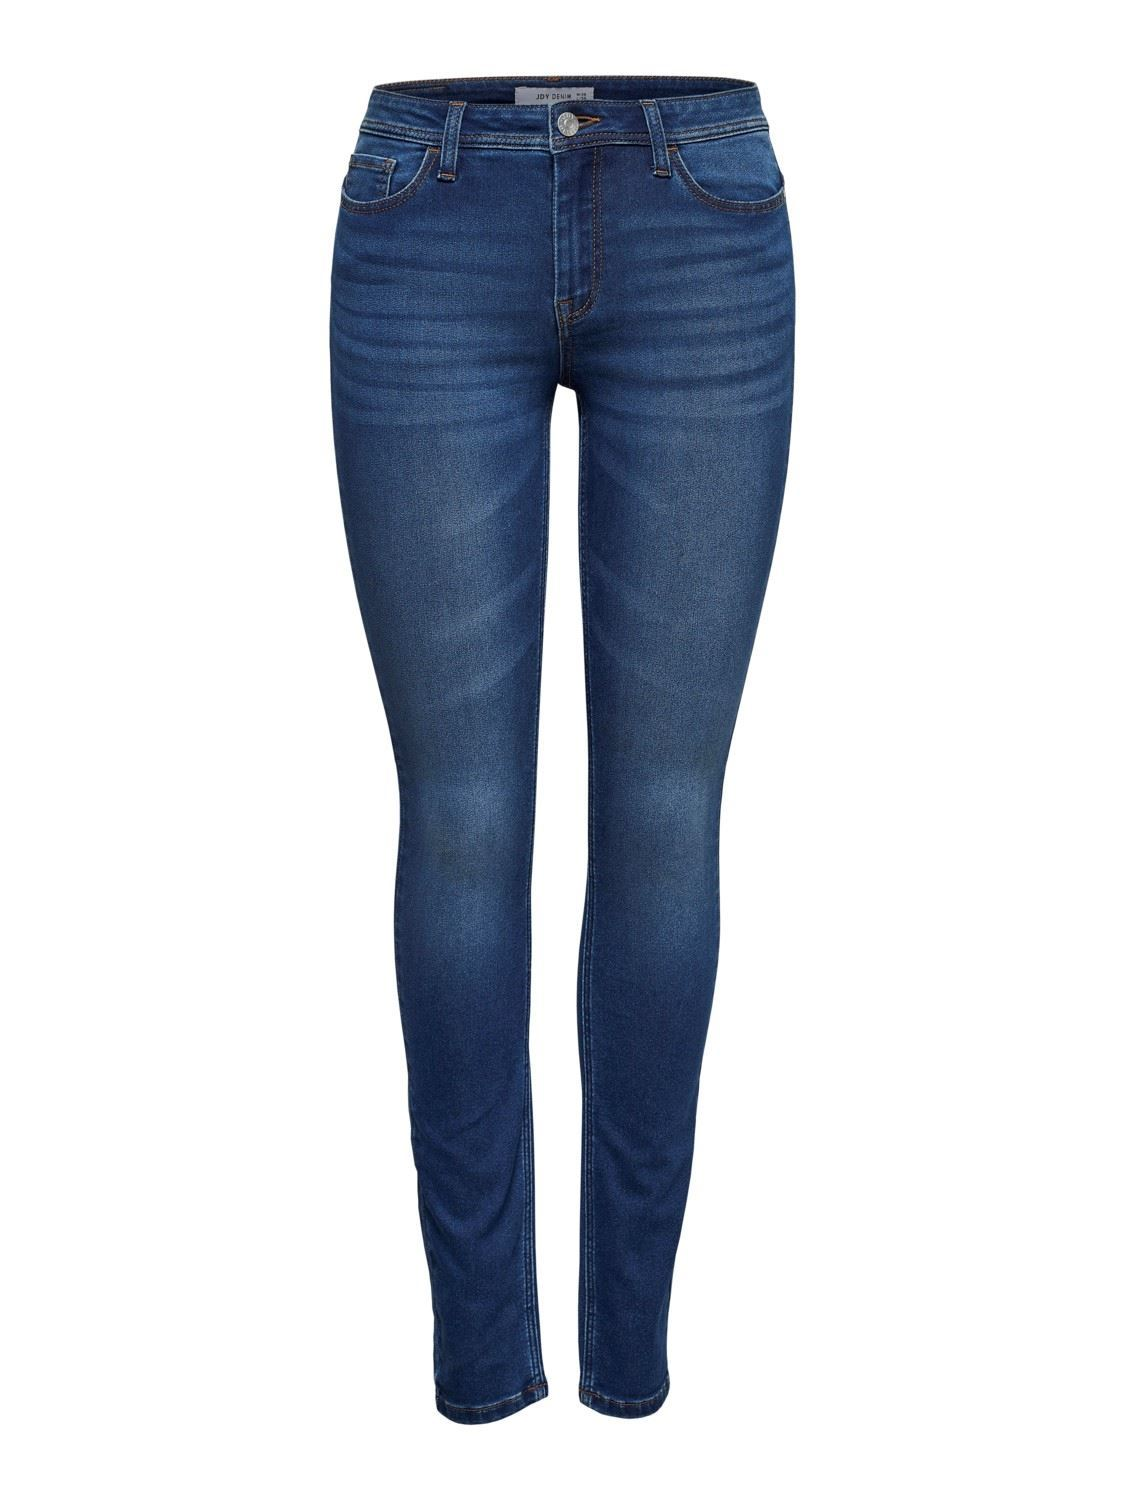 JDY Jake  Skinny  RW Med Blue DNM Noos - Medium Blue Denim